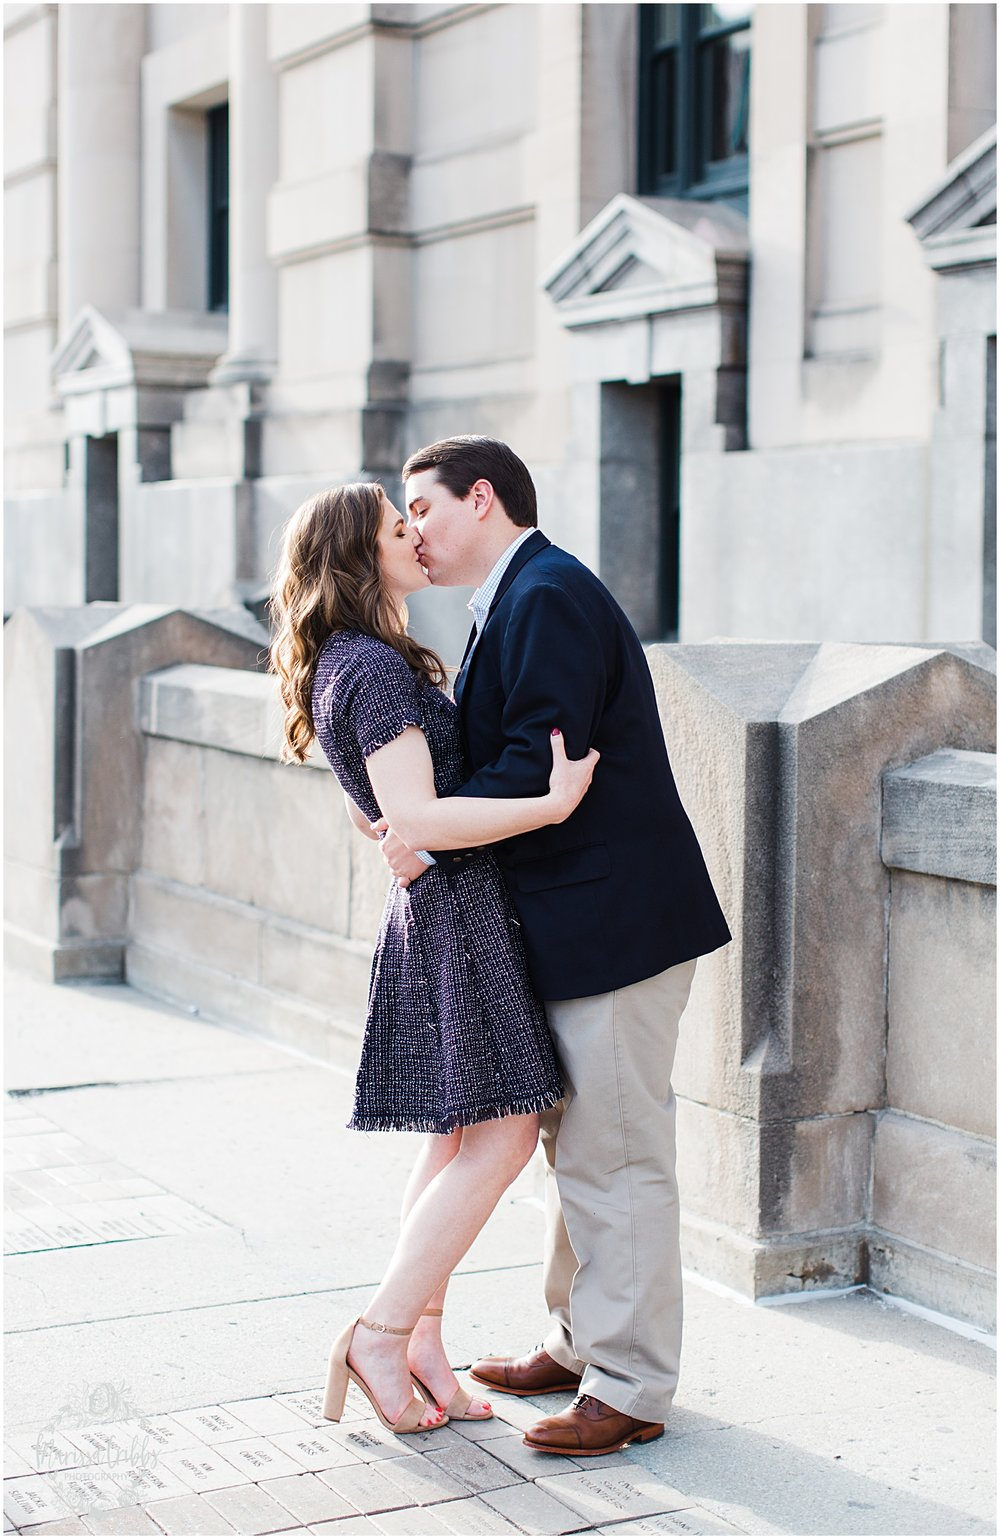 CAROLINE & JOE ENGAGEMENT FINAL | MARISSA CRIBBS PHOTOGRAPHY_4189.jpg